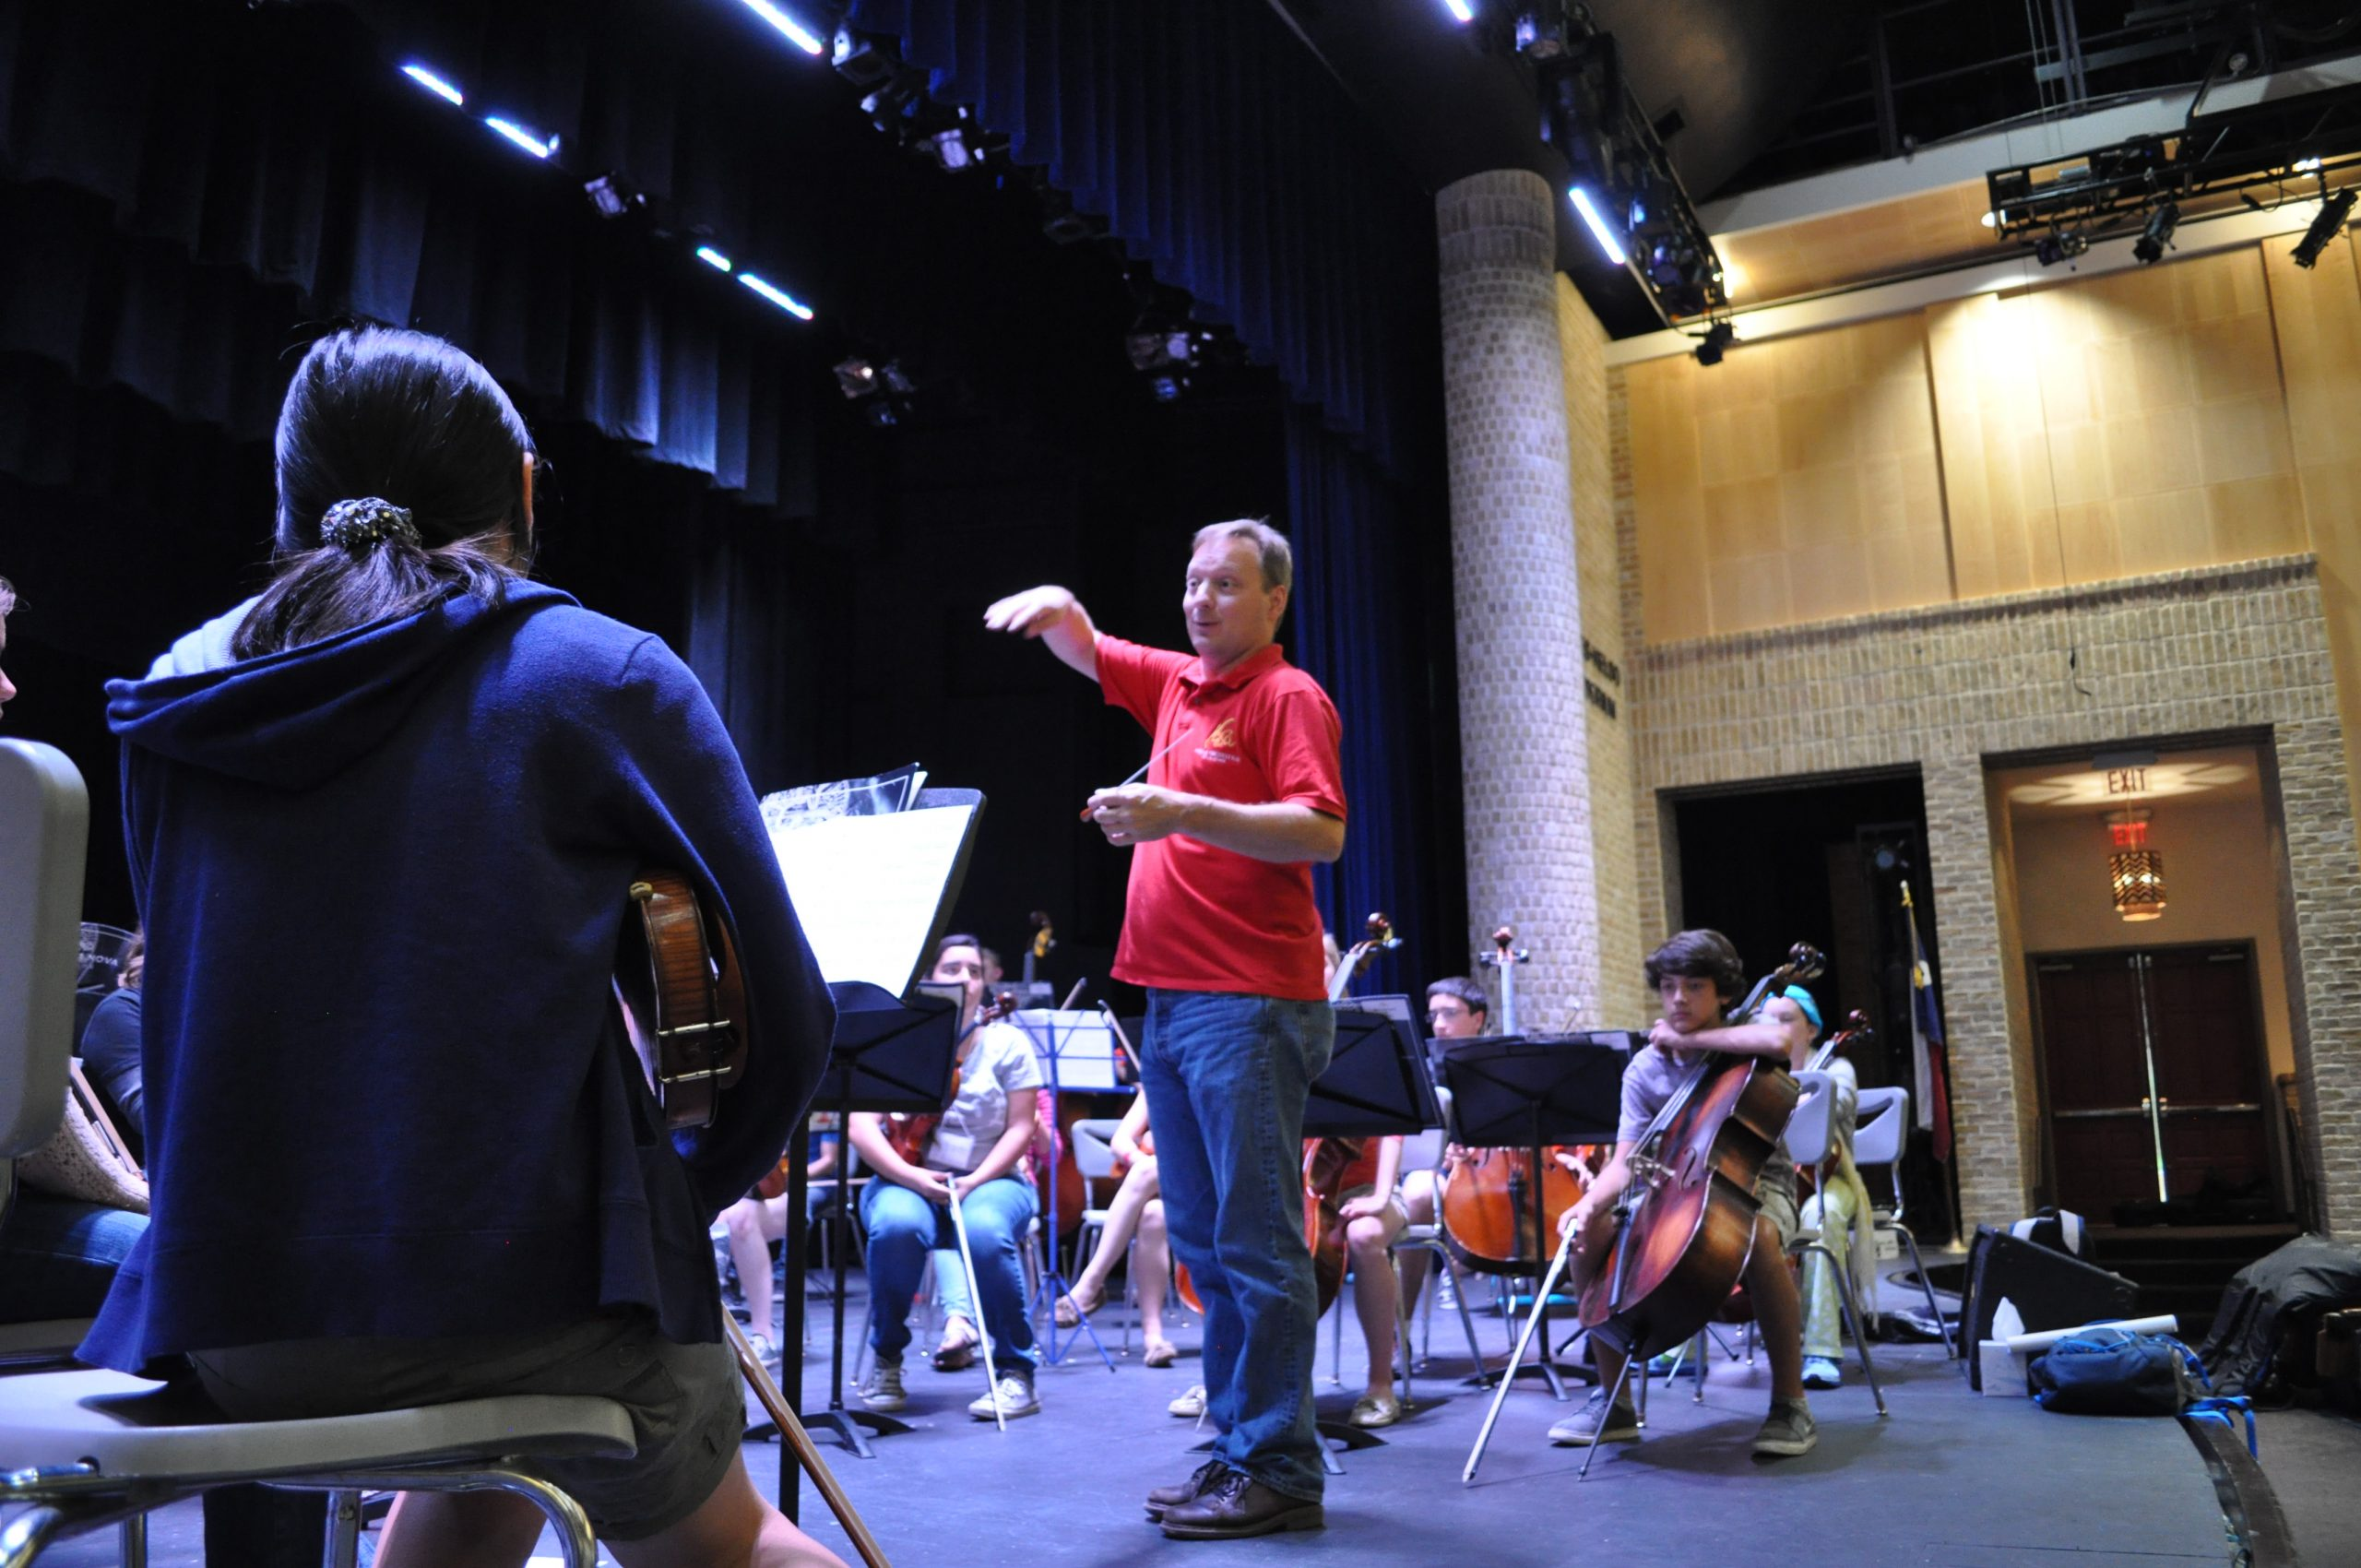 Ken Freudigman, principal cello in the San Antonio Symphony, directs the YOSA symphony orchestra. Photo by Iris Dimmick.